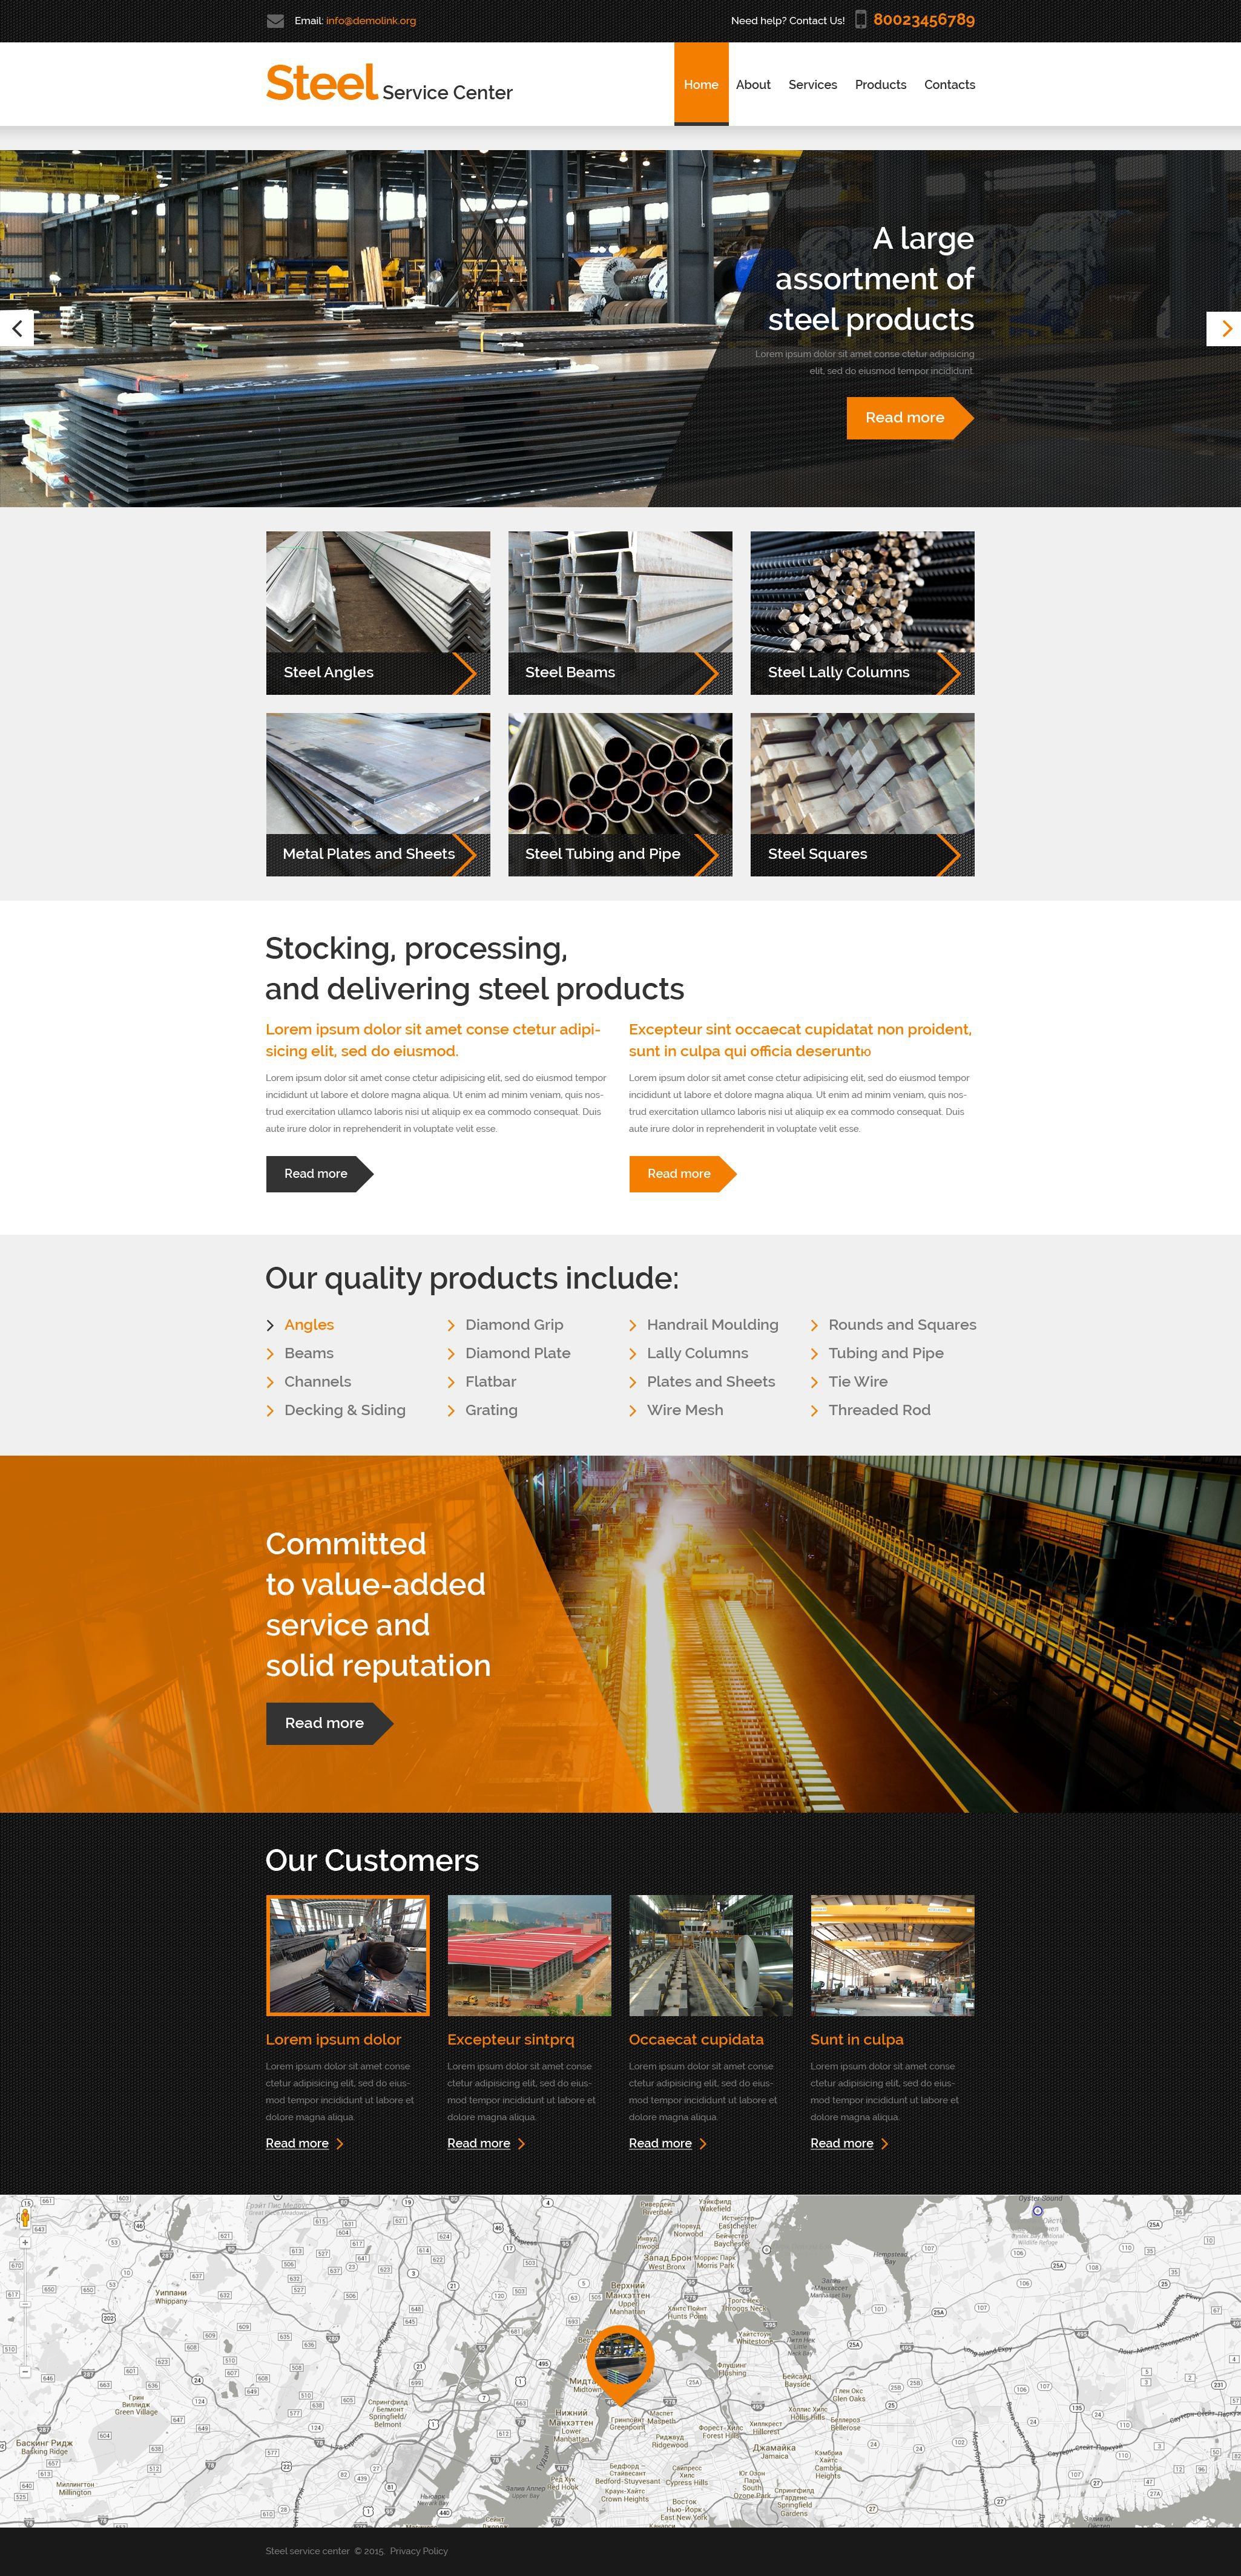 The Steel Service Center Bootstrap Design 53672, one of the best website templates of its kind (industrial, most popular), also known as steel service center website template, processing website template, services website template, steel website template, industrial website template, metal website template, mining company website template, camp website template, open-cast website template, project website template, projects website template, services website template, human website template, resources website template, investors website template, site website template, walking website template, excavator website template, truck and related with steel service center, processing, services, steel, industrial, metal, mining company, camp, open-cast, project, projects, services, human, resources, investors, site, walking, excavator, truck, etc.